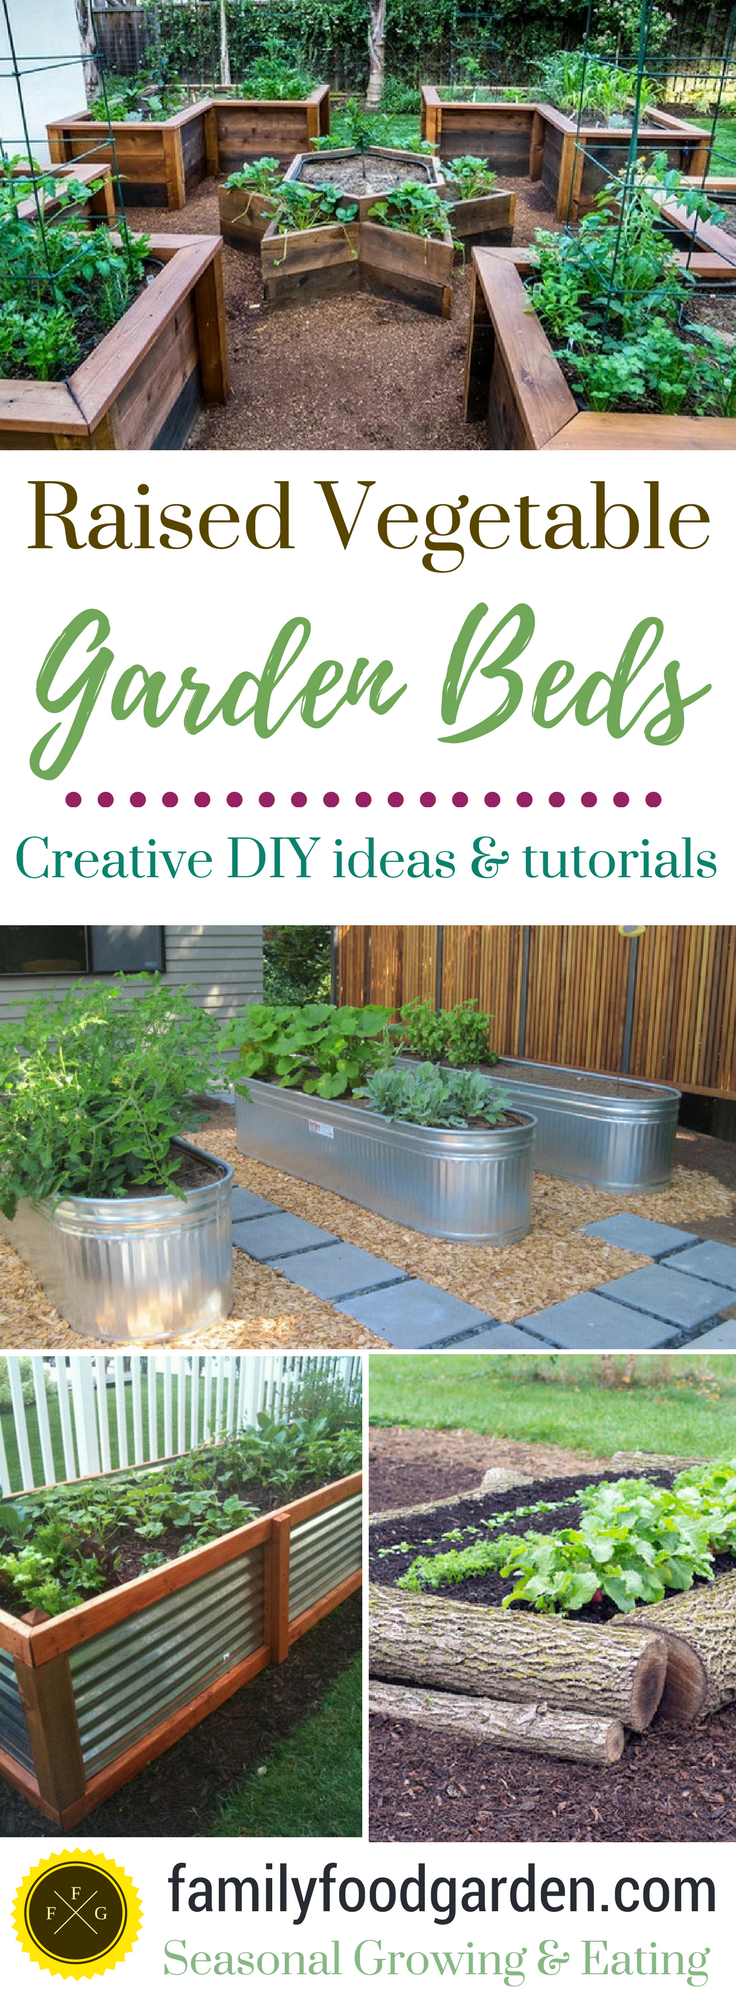 Raised garden beds add a lot of beauty to a garden. They're also excellent for drainage, warming up the soil faster in the